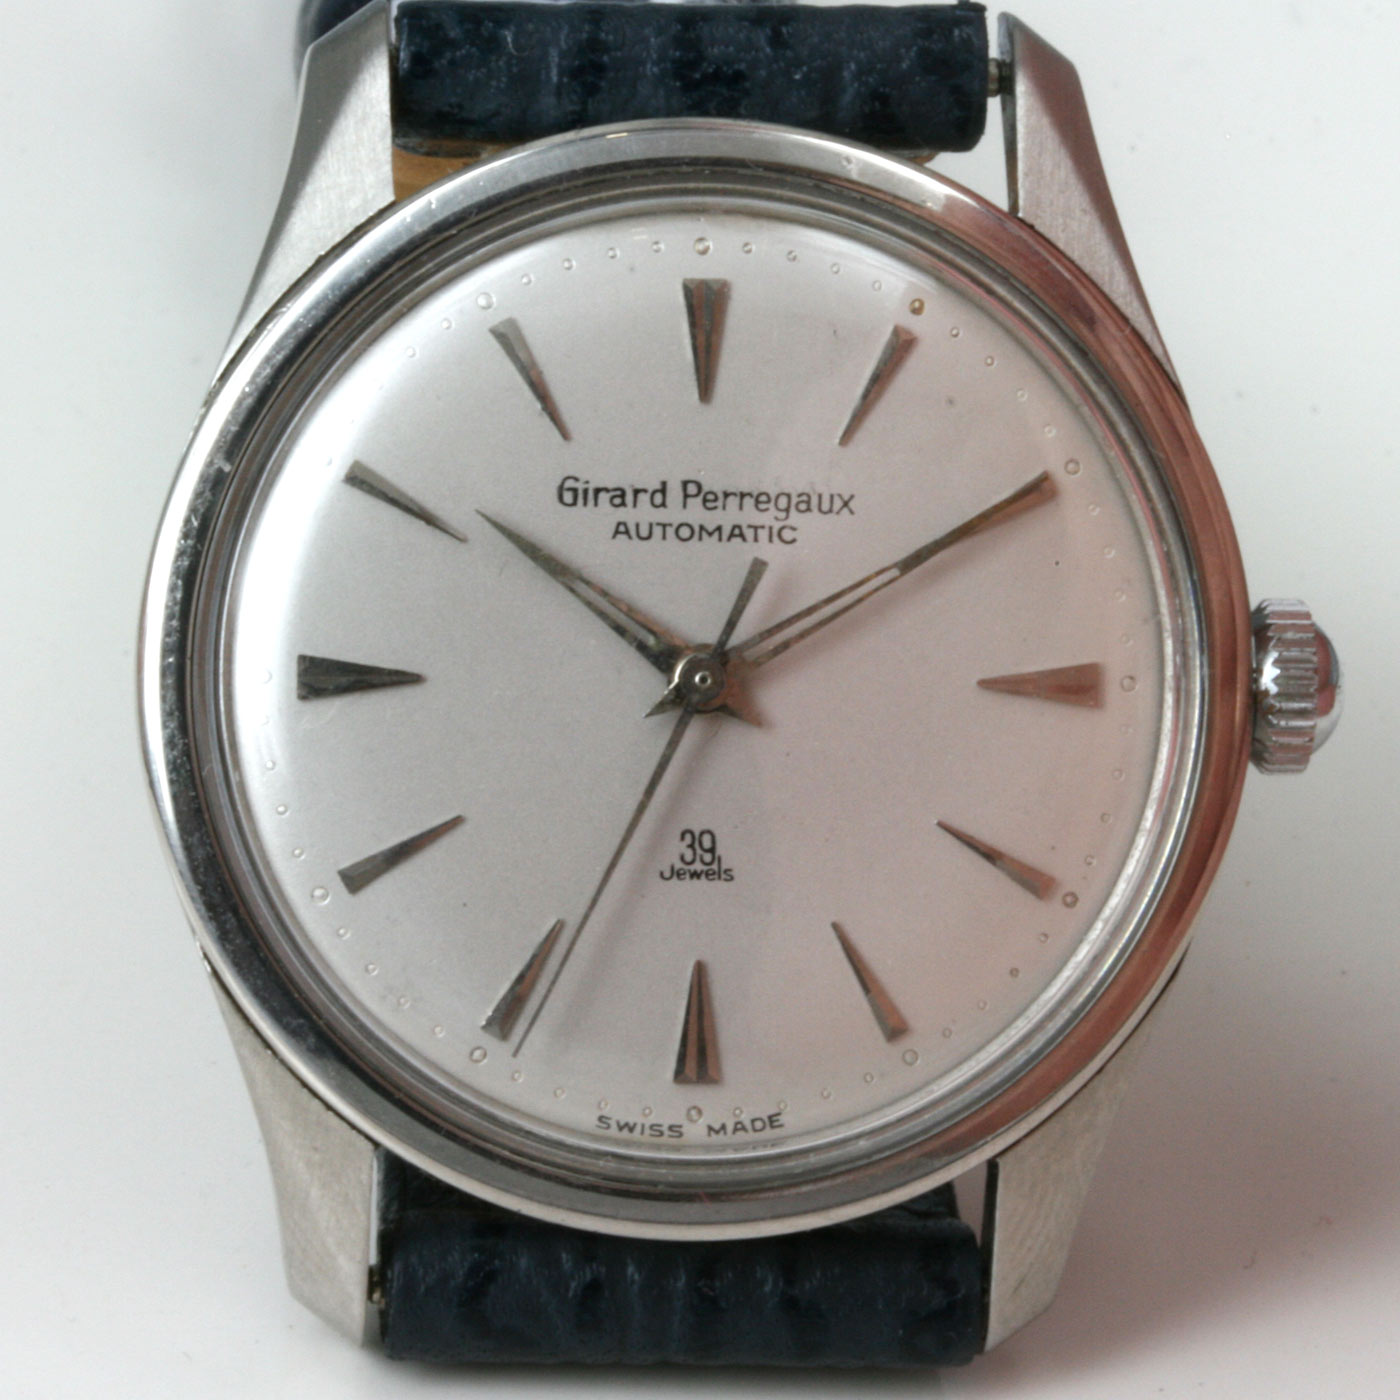 Buy girard perregaux watch with 39 jewels sold items sold watches sydney kalmarantiques for Girard perregaux